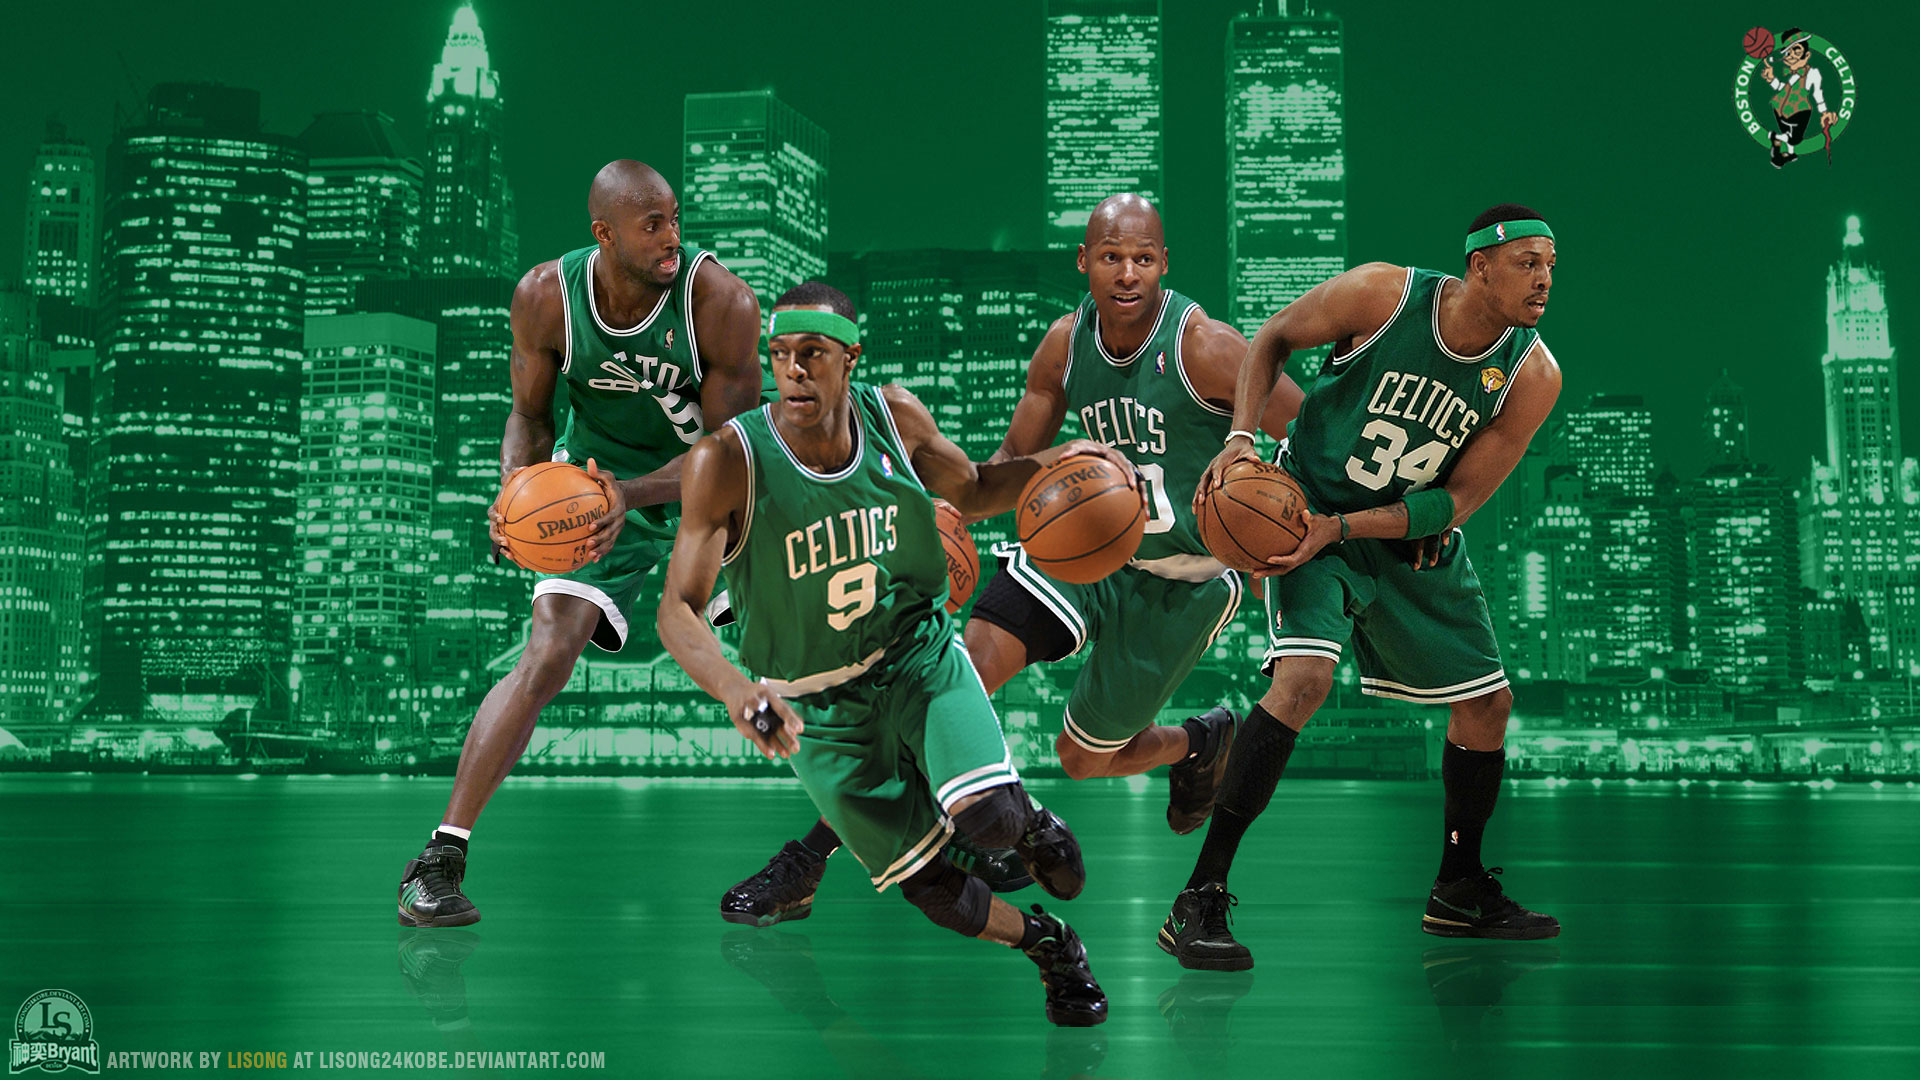 Boston Celtics Big 4 2012 Widescreen Wallpaper